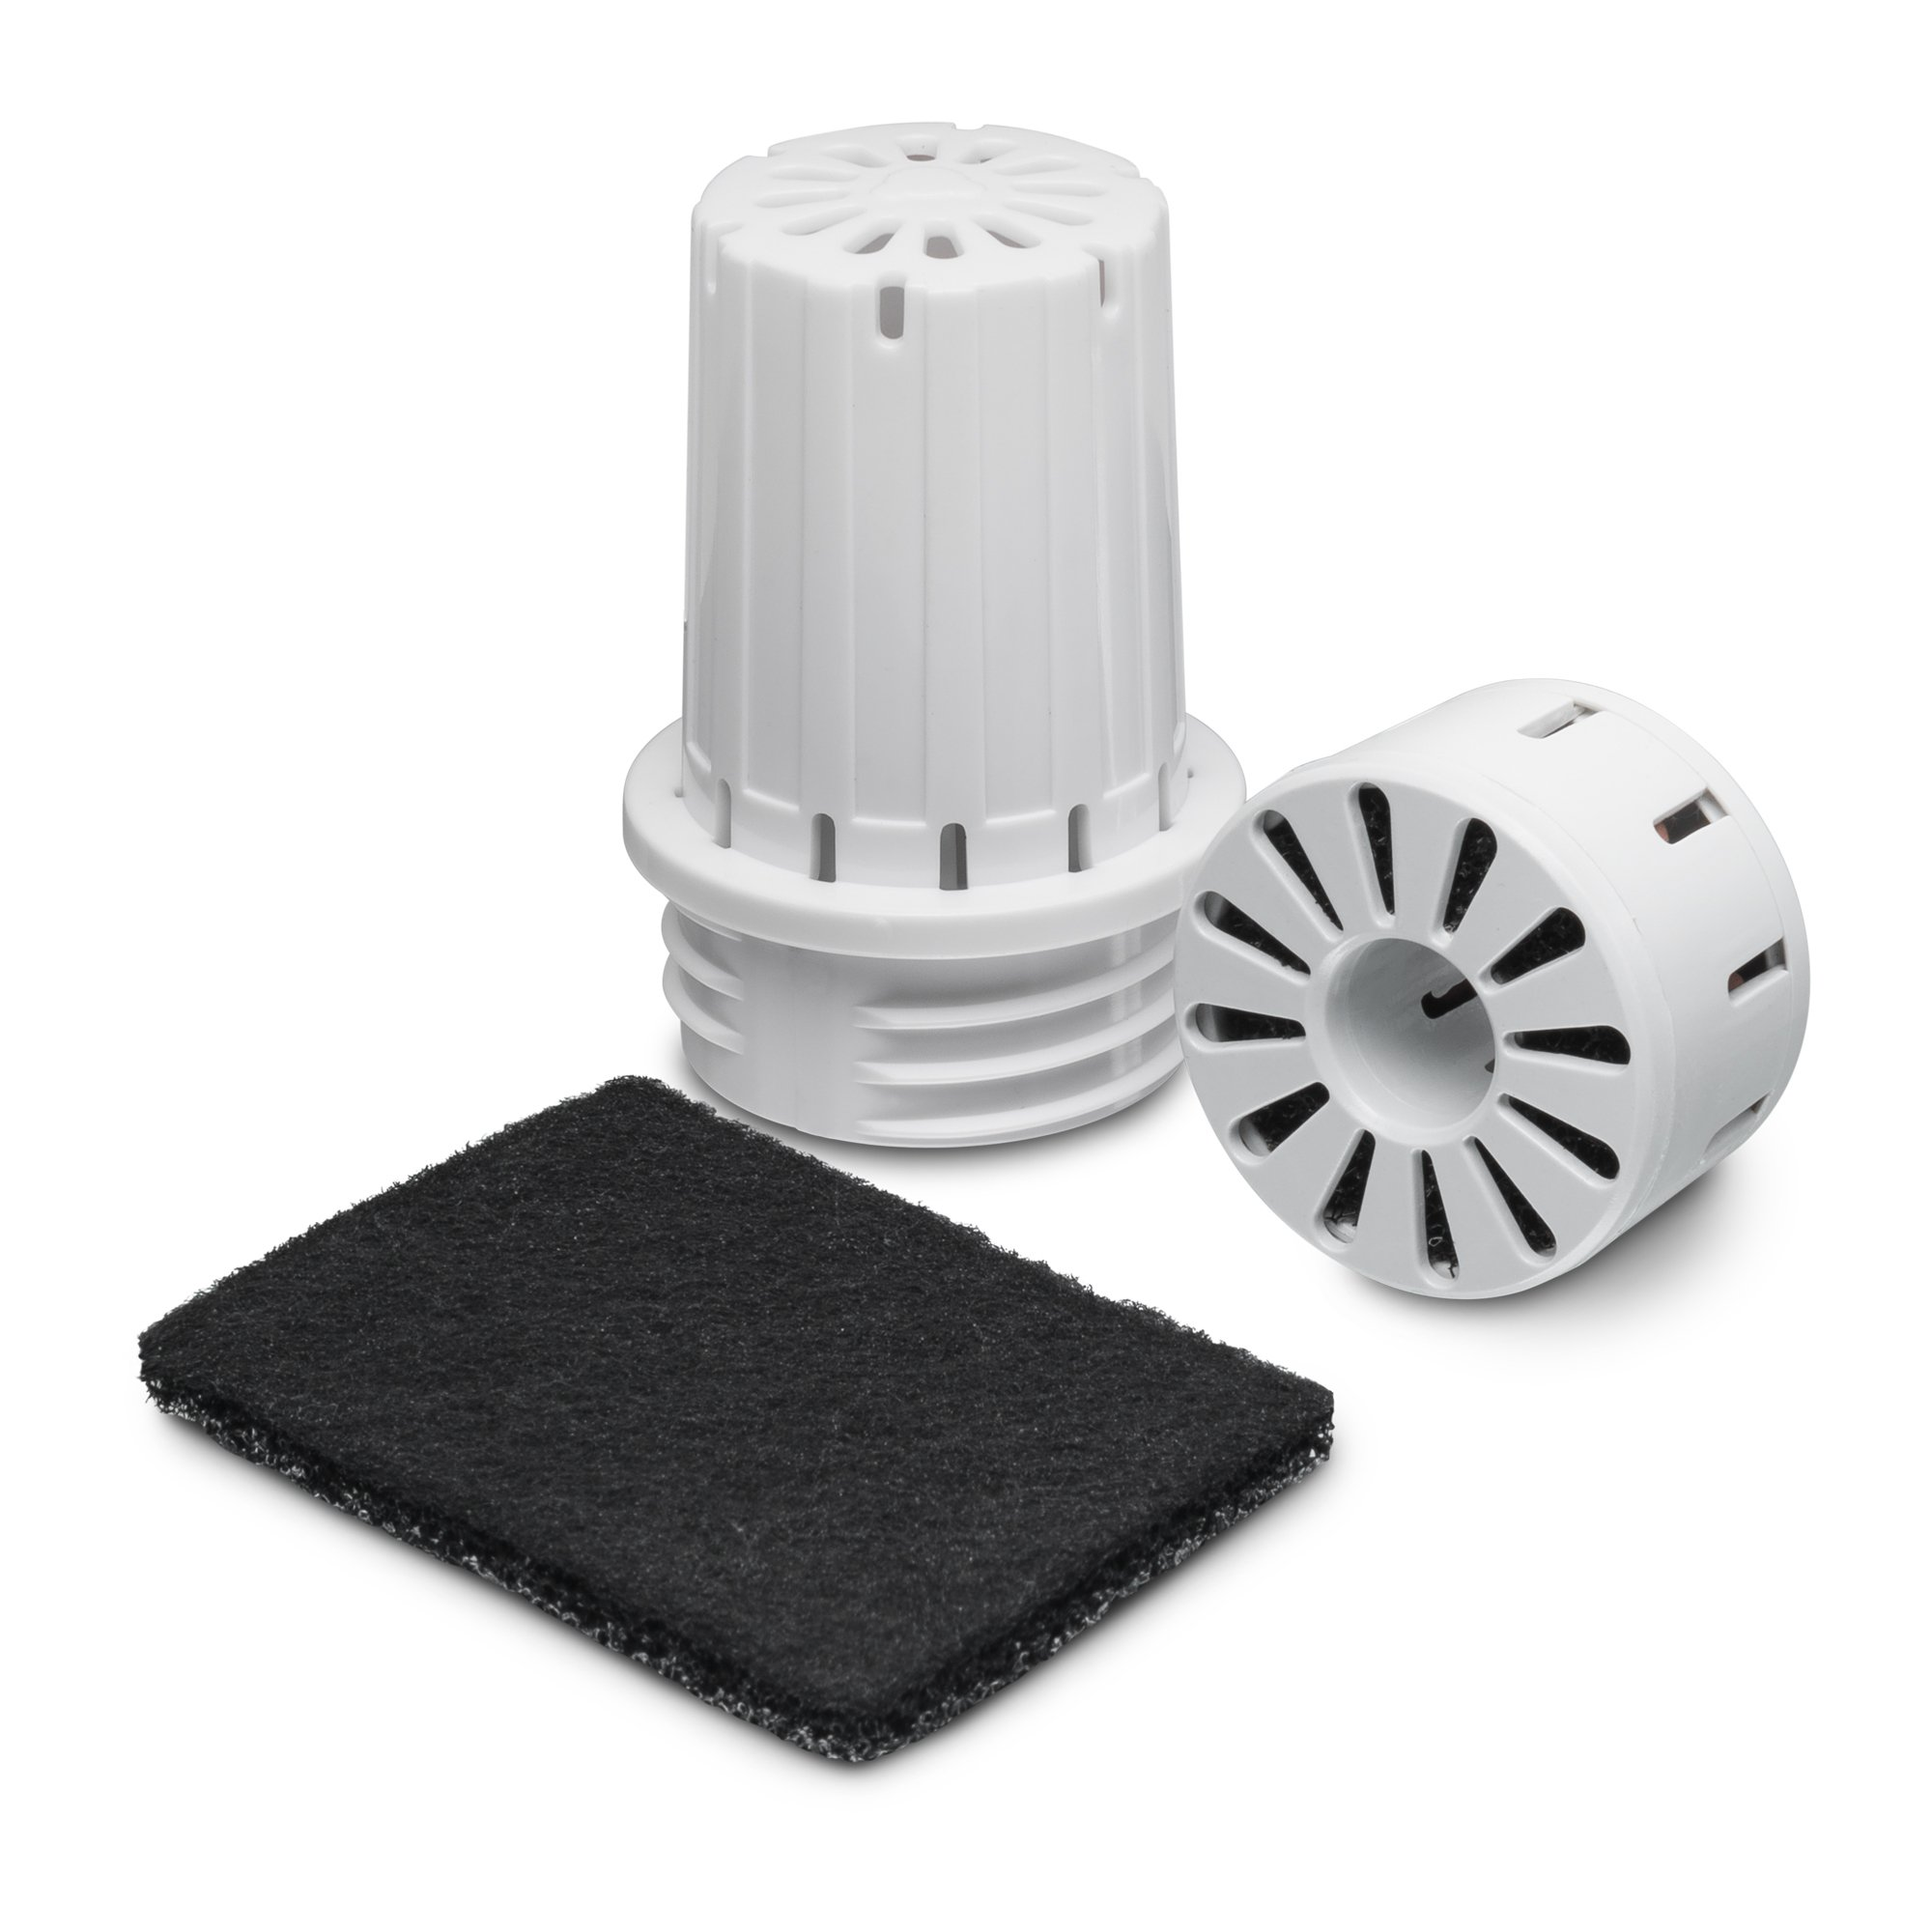 Motorola Smart Nursery Humidifier Filter, Compatible with Humidifier Model MBP83SN